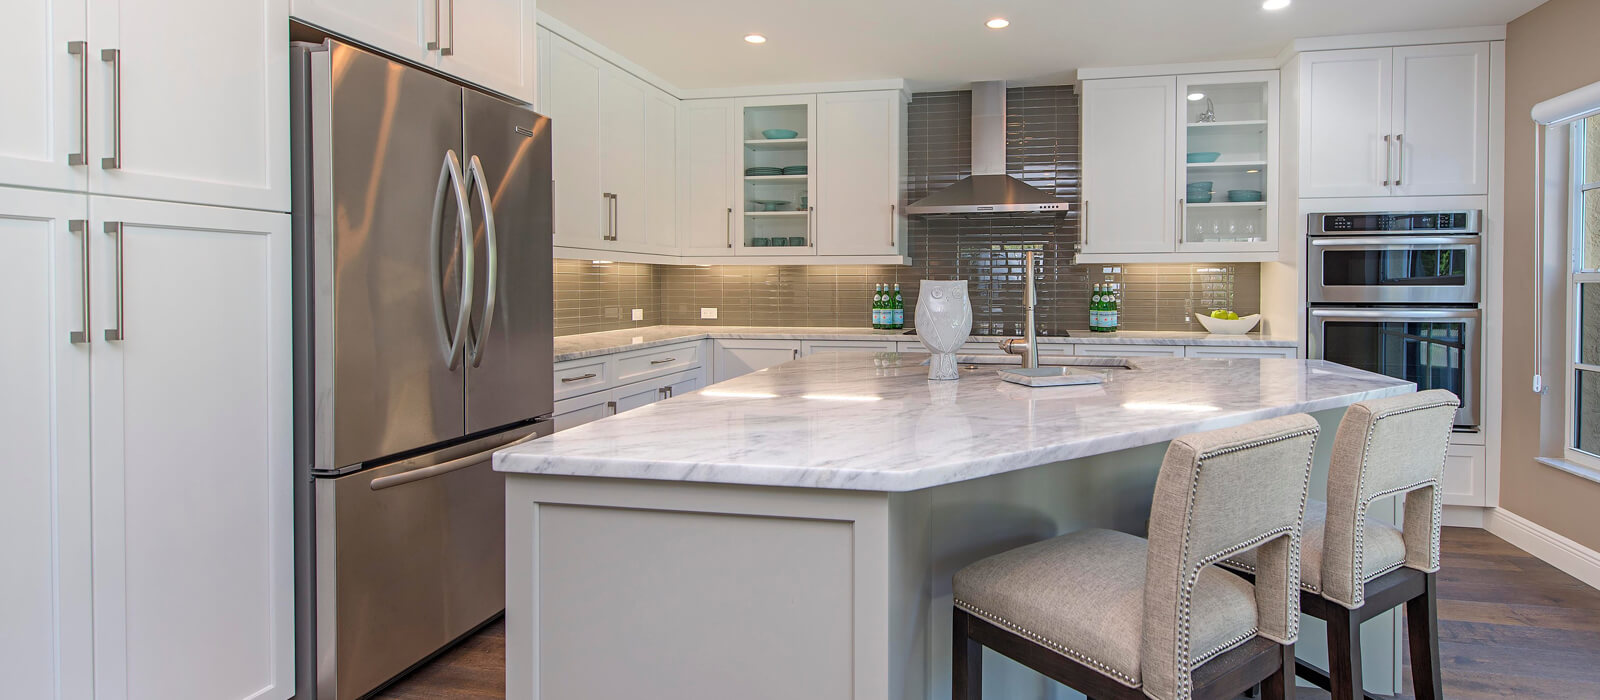 contemporary kitchens gallery. contemporary kitchen gallery kitchens n